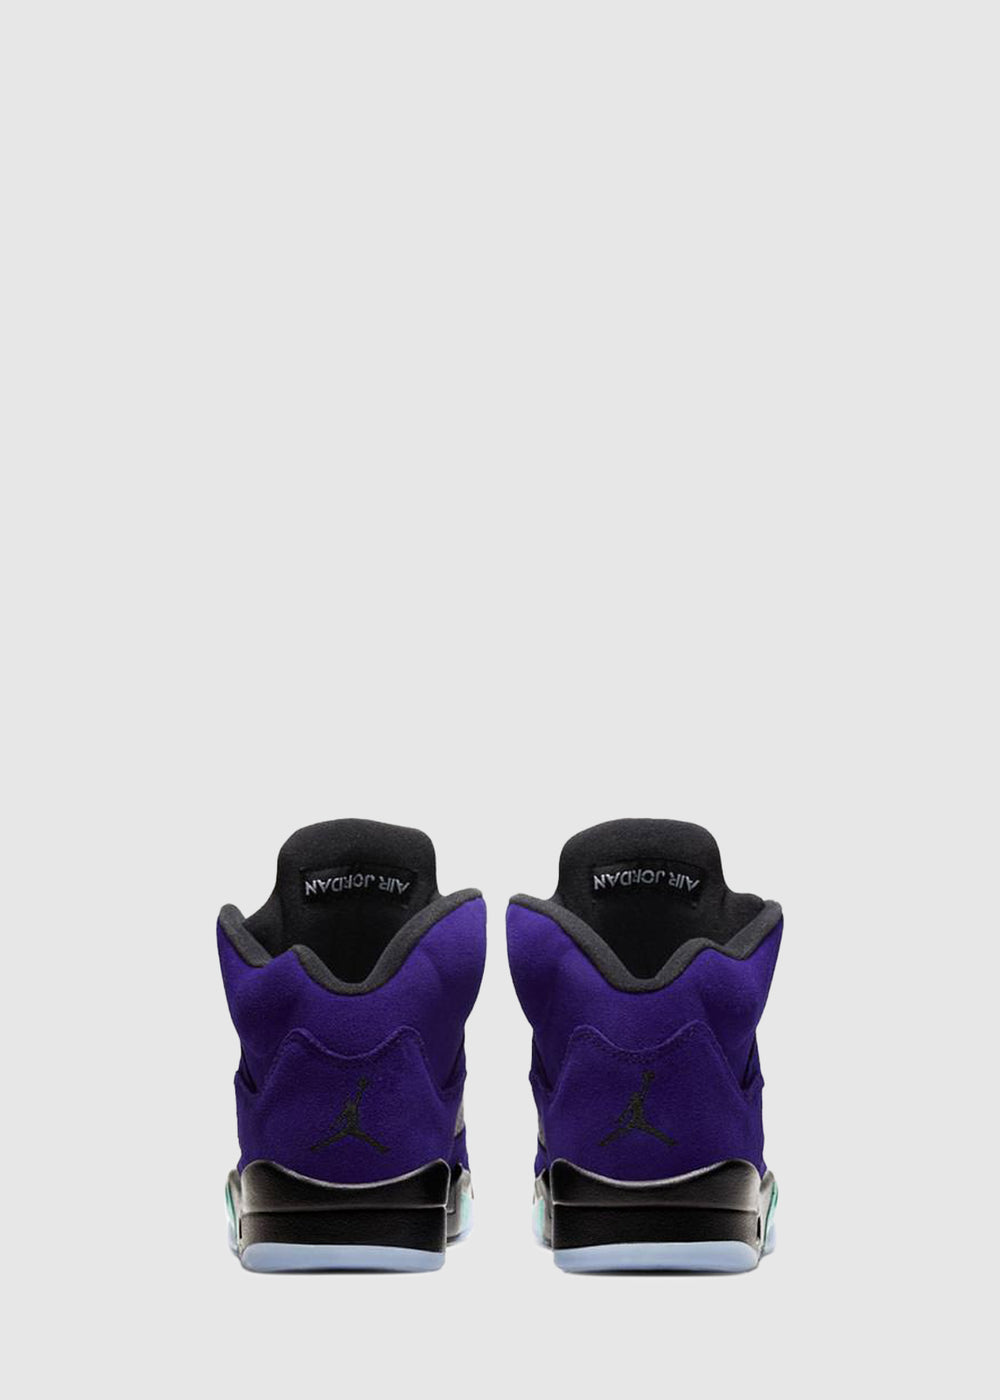 aj5-alternate-grape-4